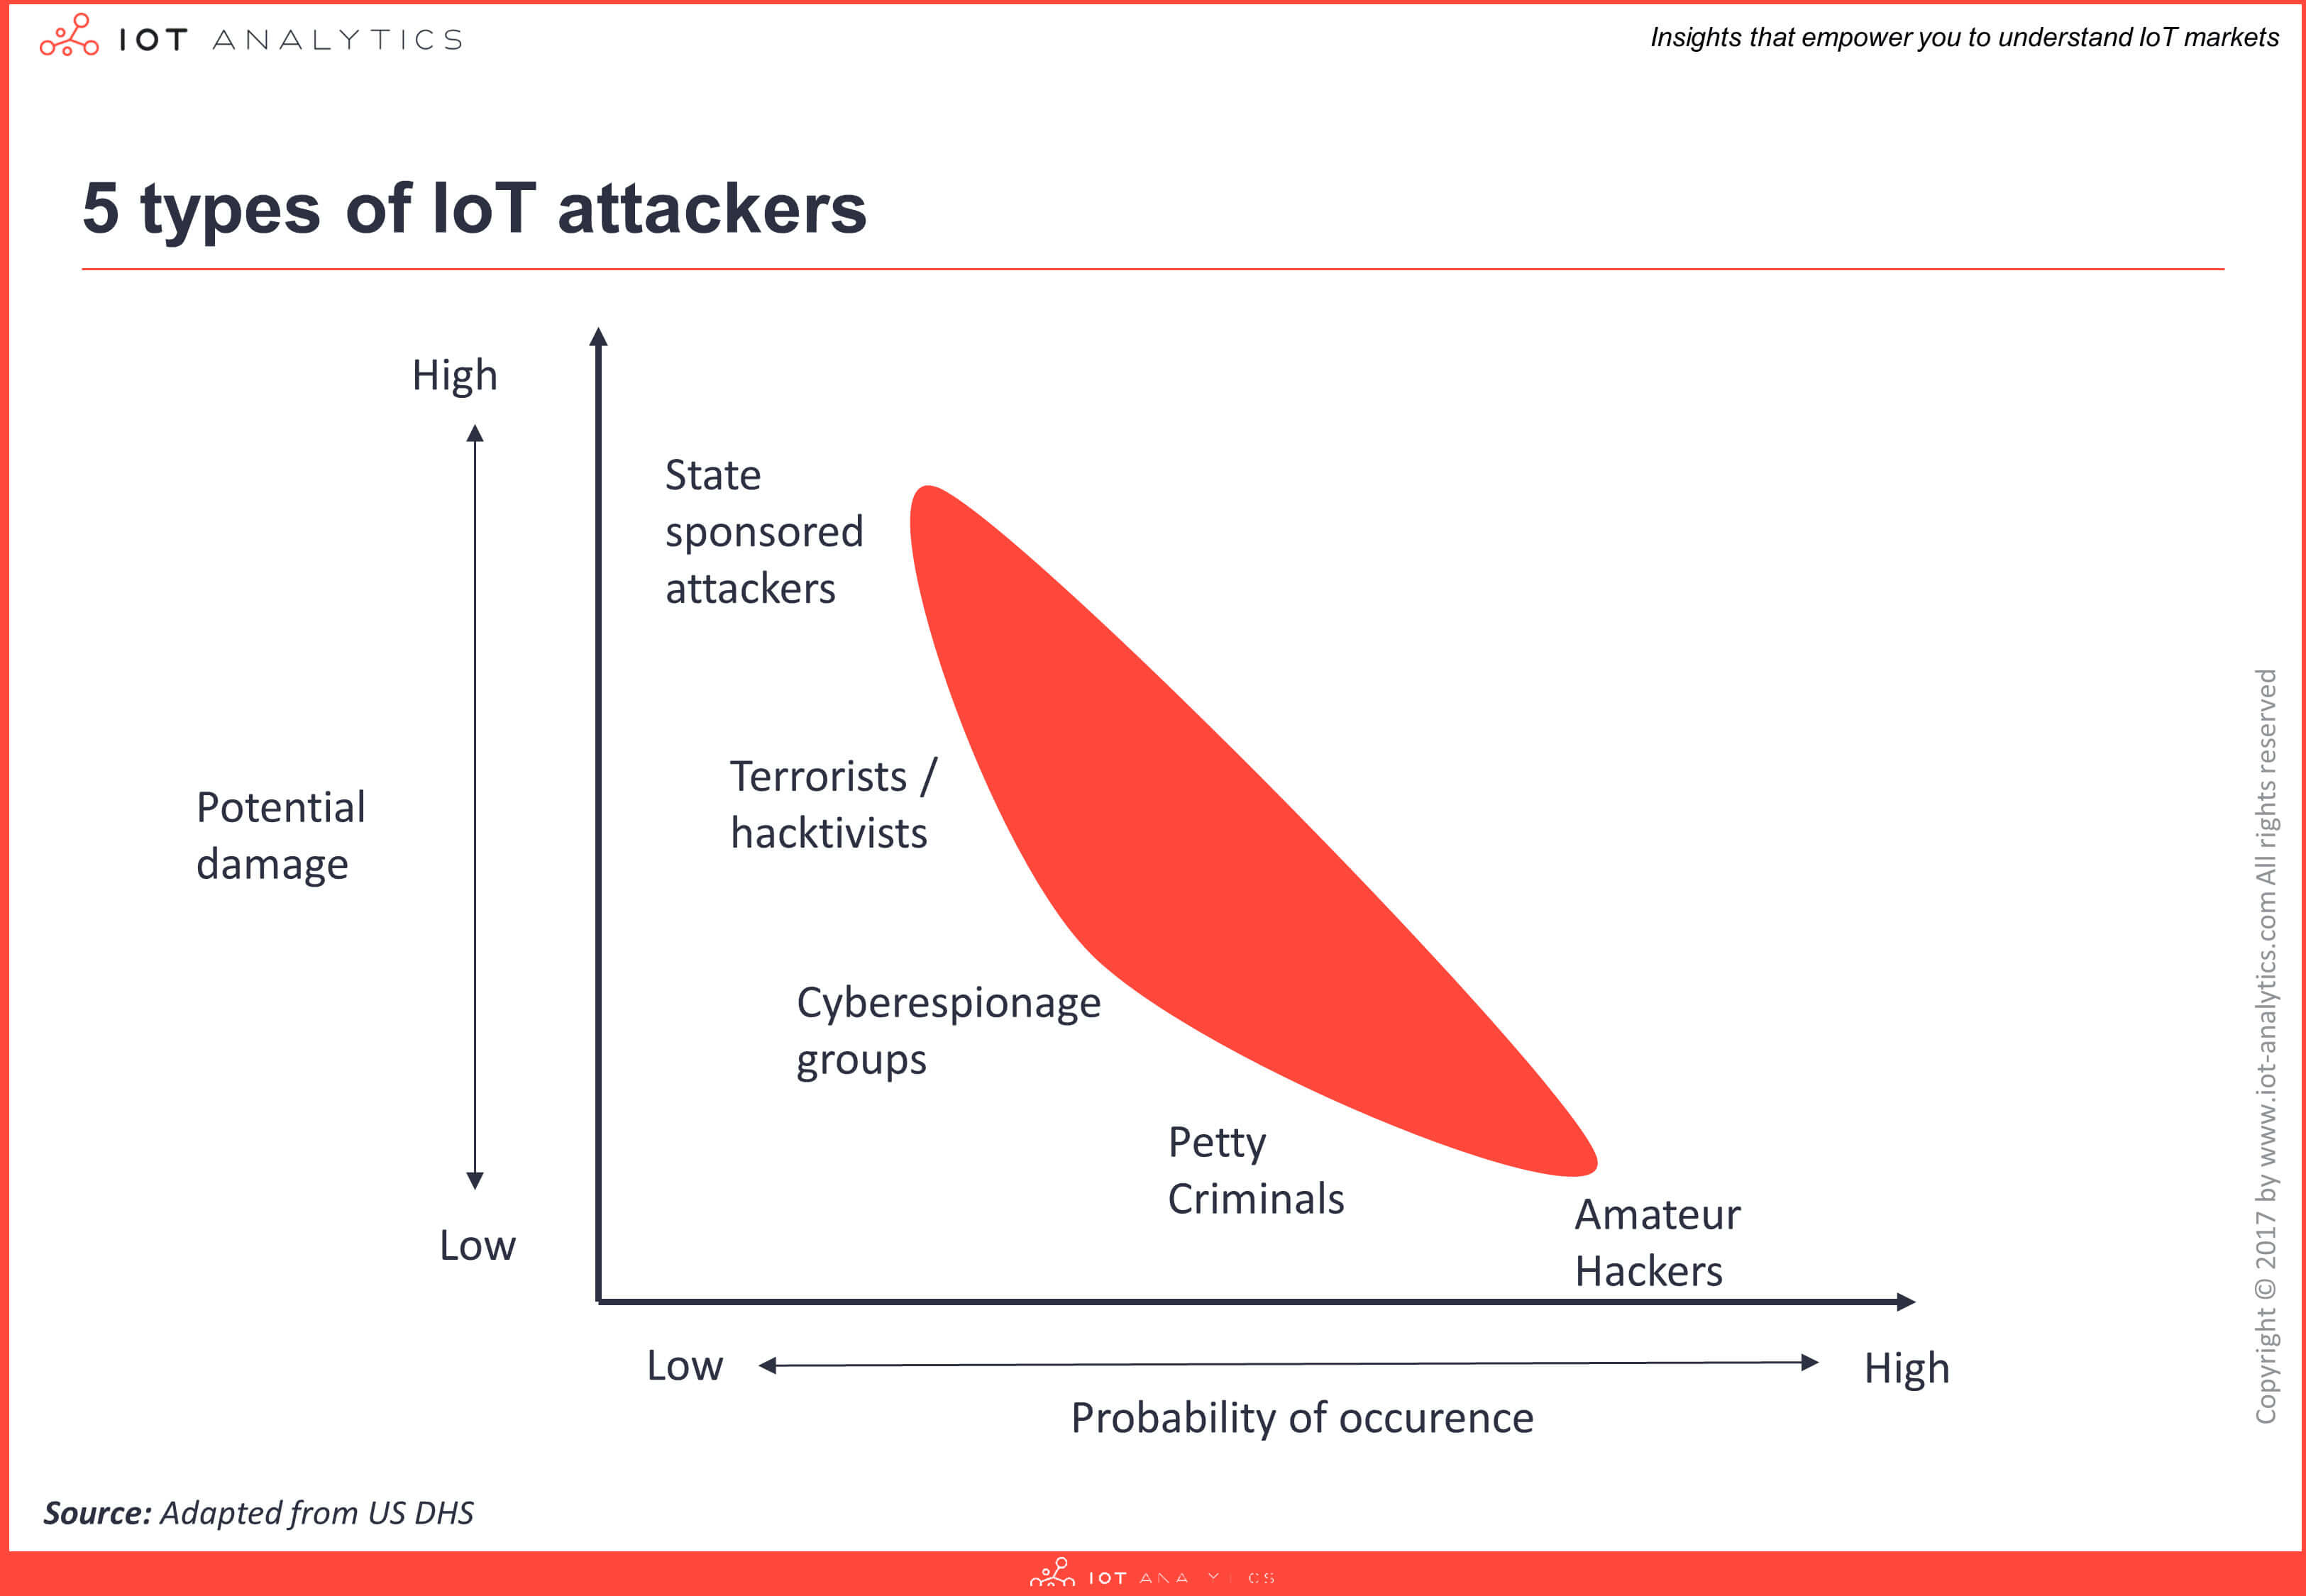 5 Types of IoT Attackers Image